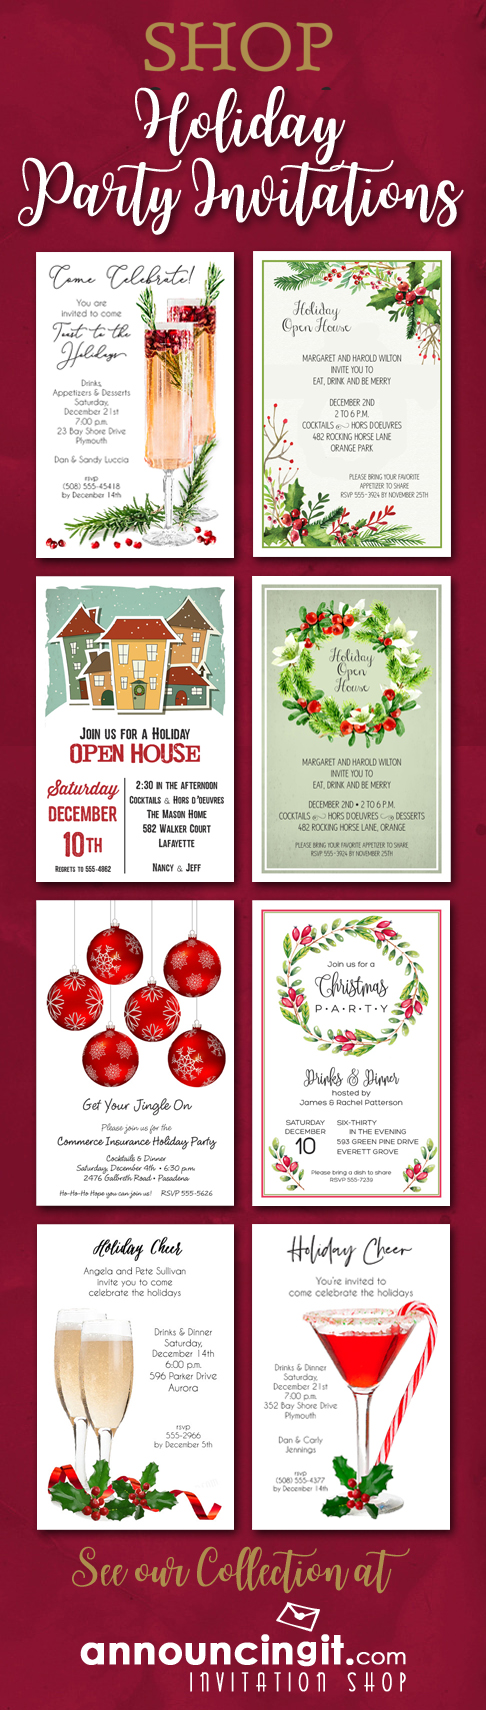 Shop Holiday Christmas Party Invitations at Announcingit.com